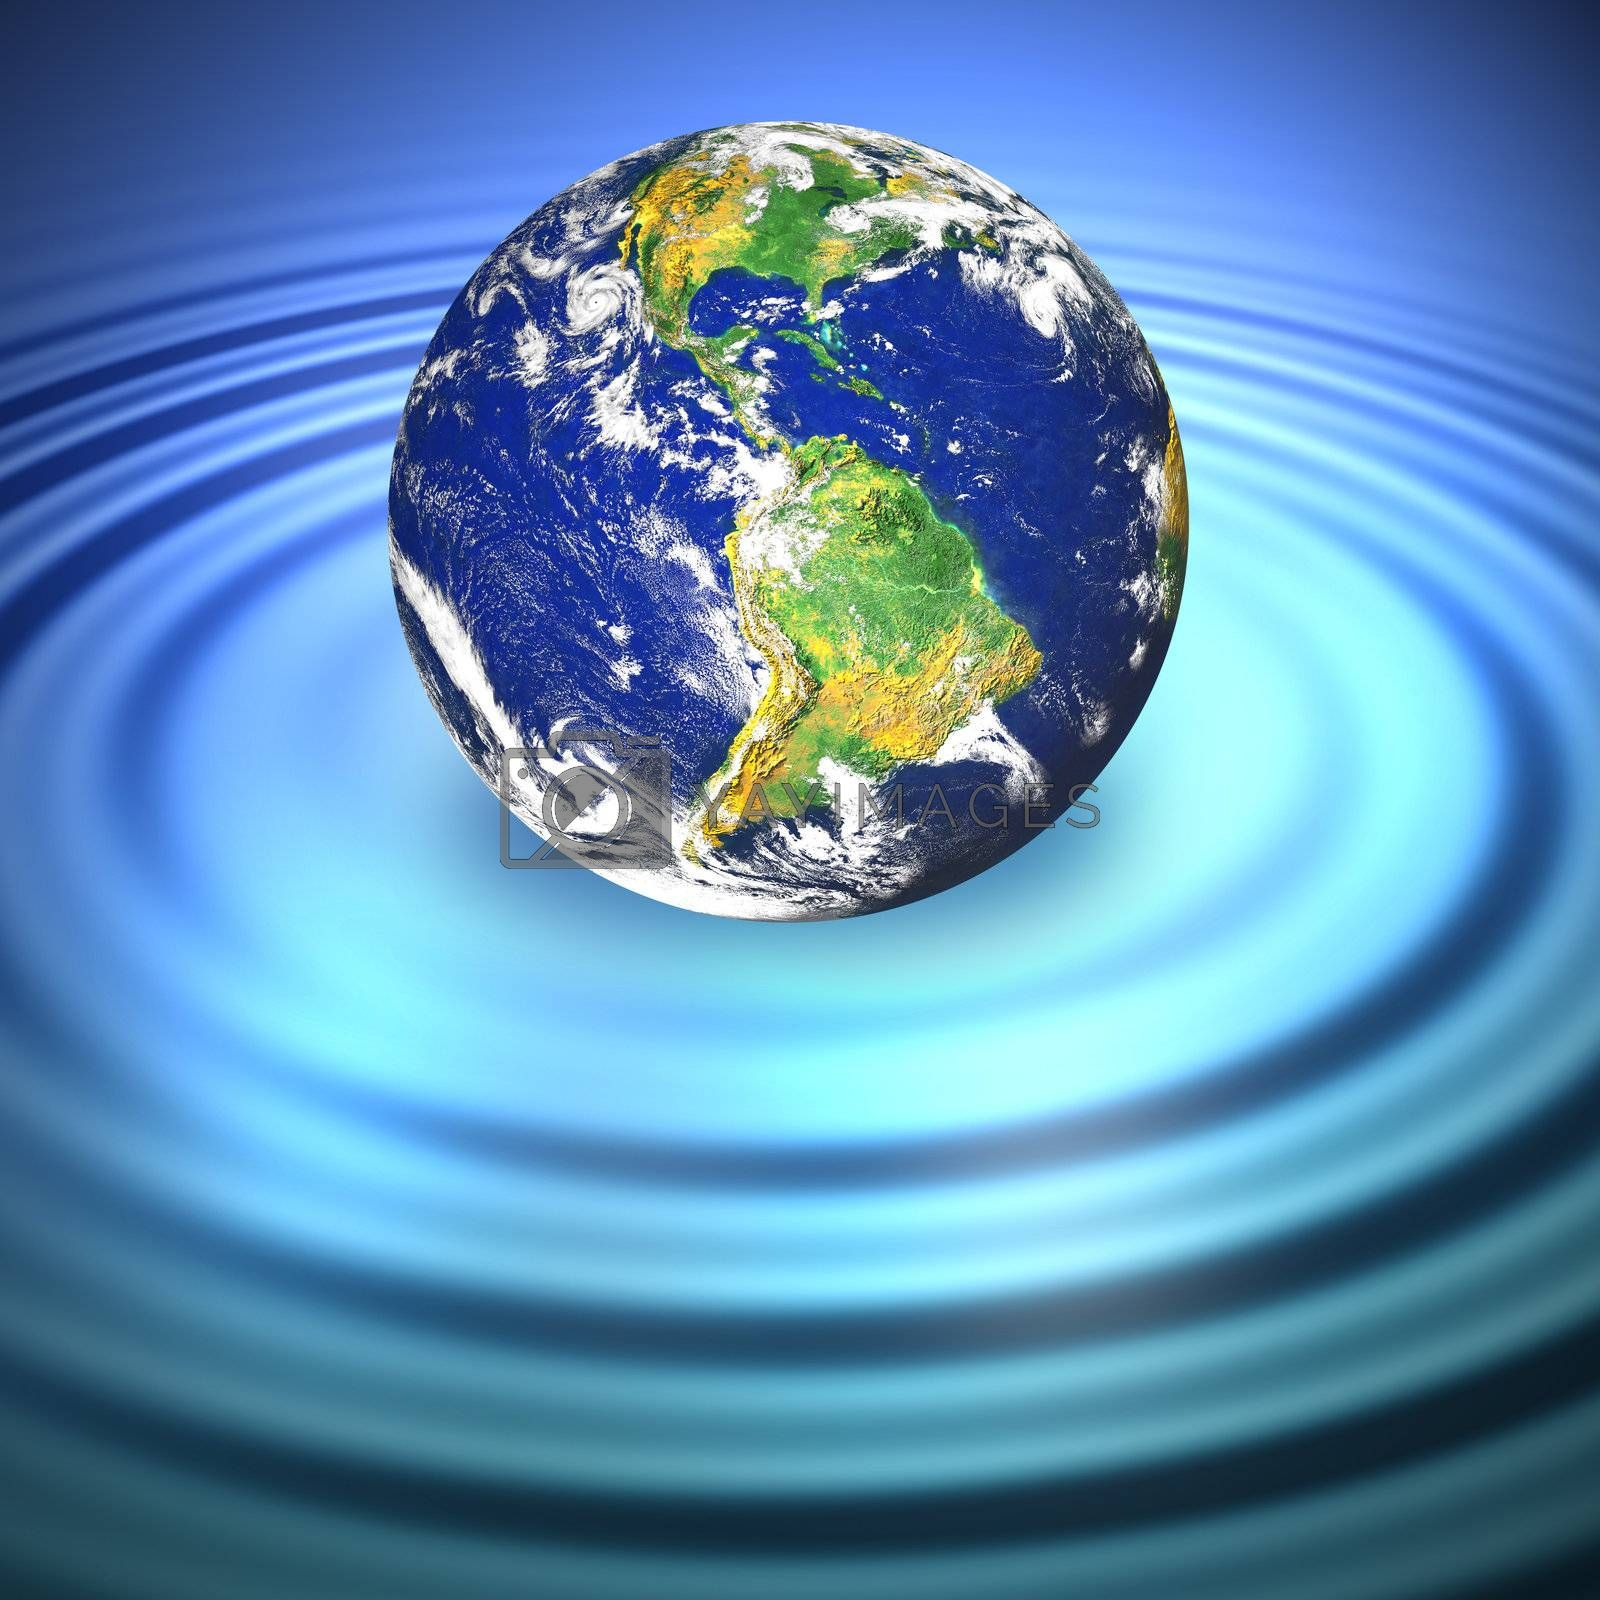 Our planet Earth floating in blue water with ripples.  Great to illustrate a variety of concepts. Earth photo courtesy of NASA.